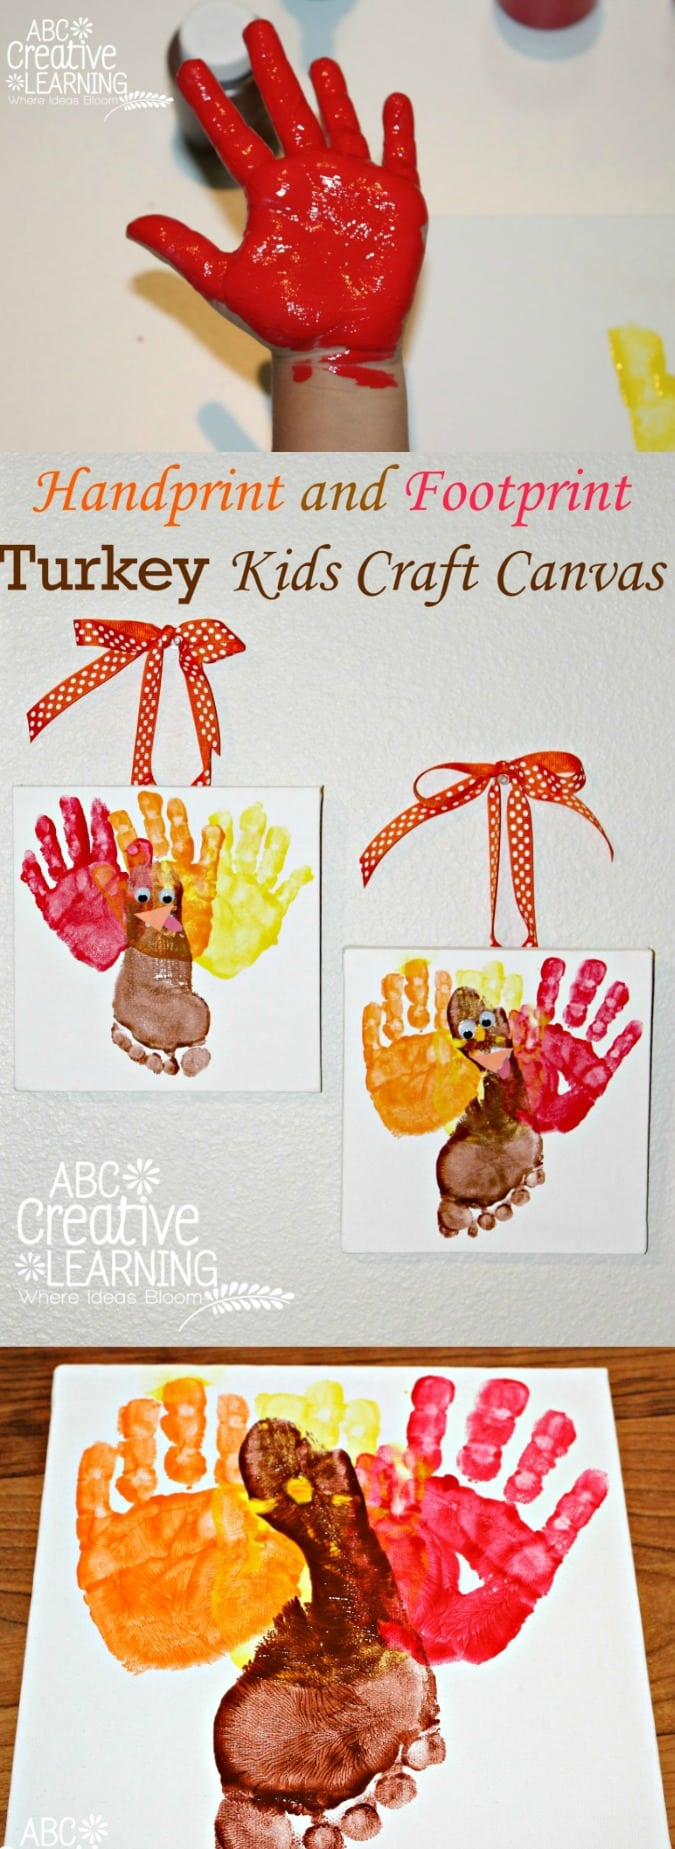 Handprint and Footprint Turkey Kids Craft Canvas